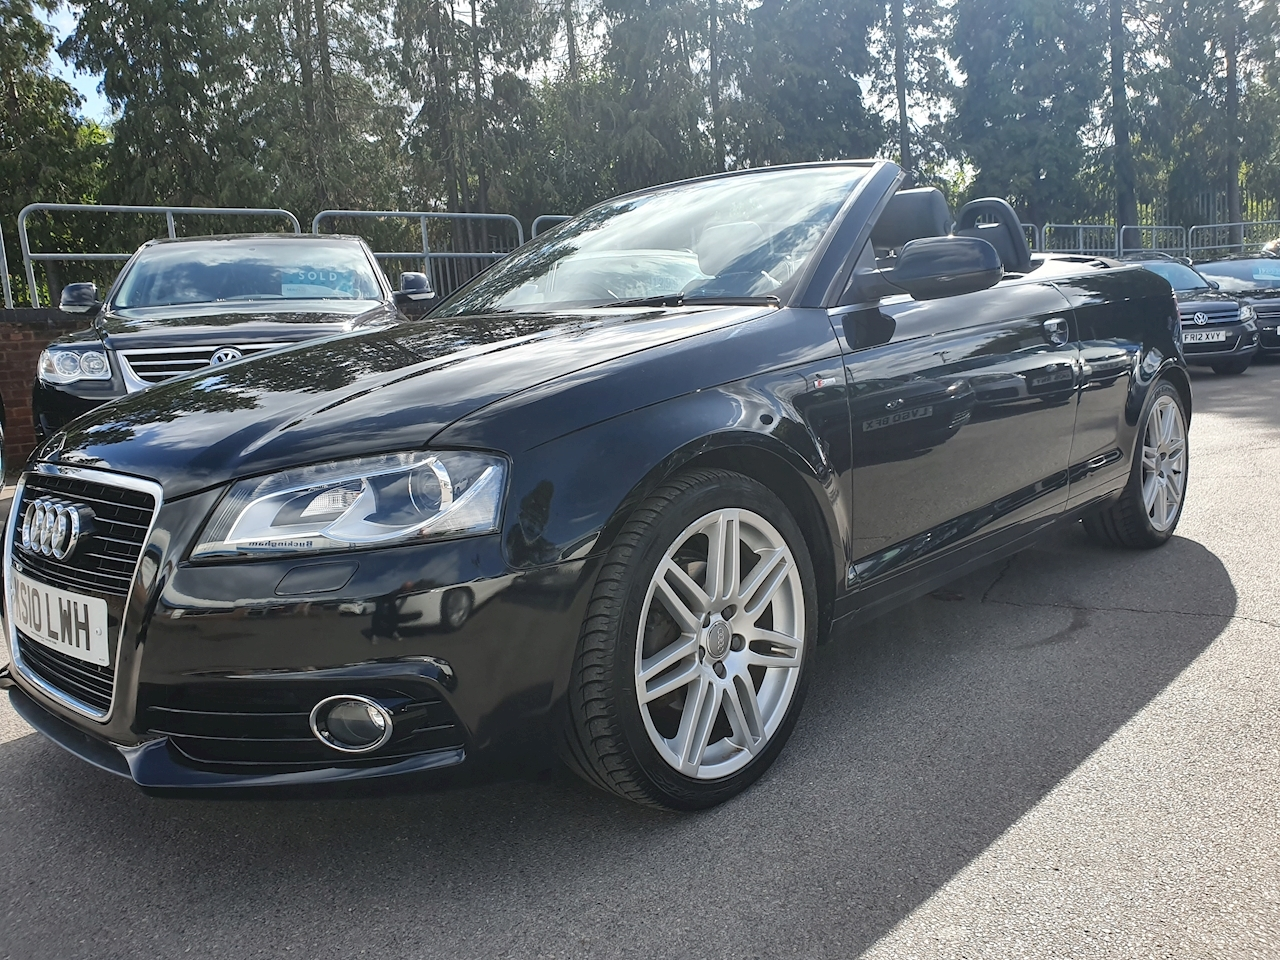 Audi A3 1.8 2dr Convertible Manual Petrol